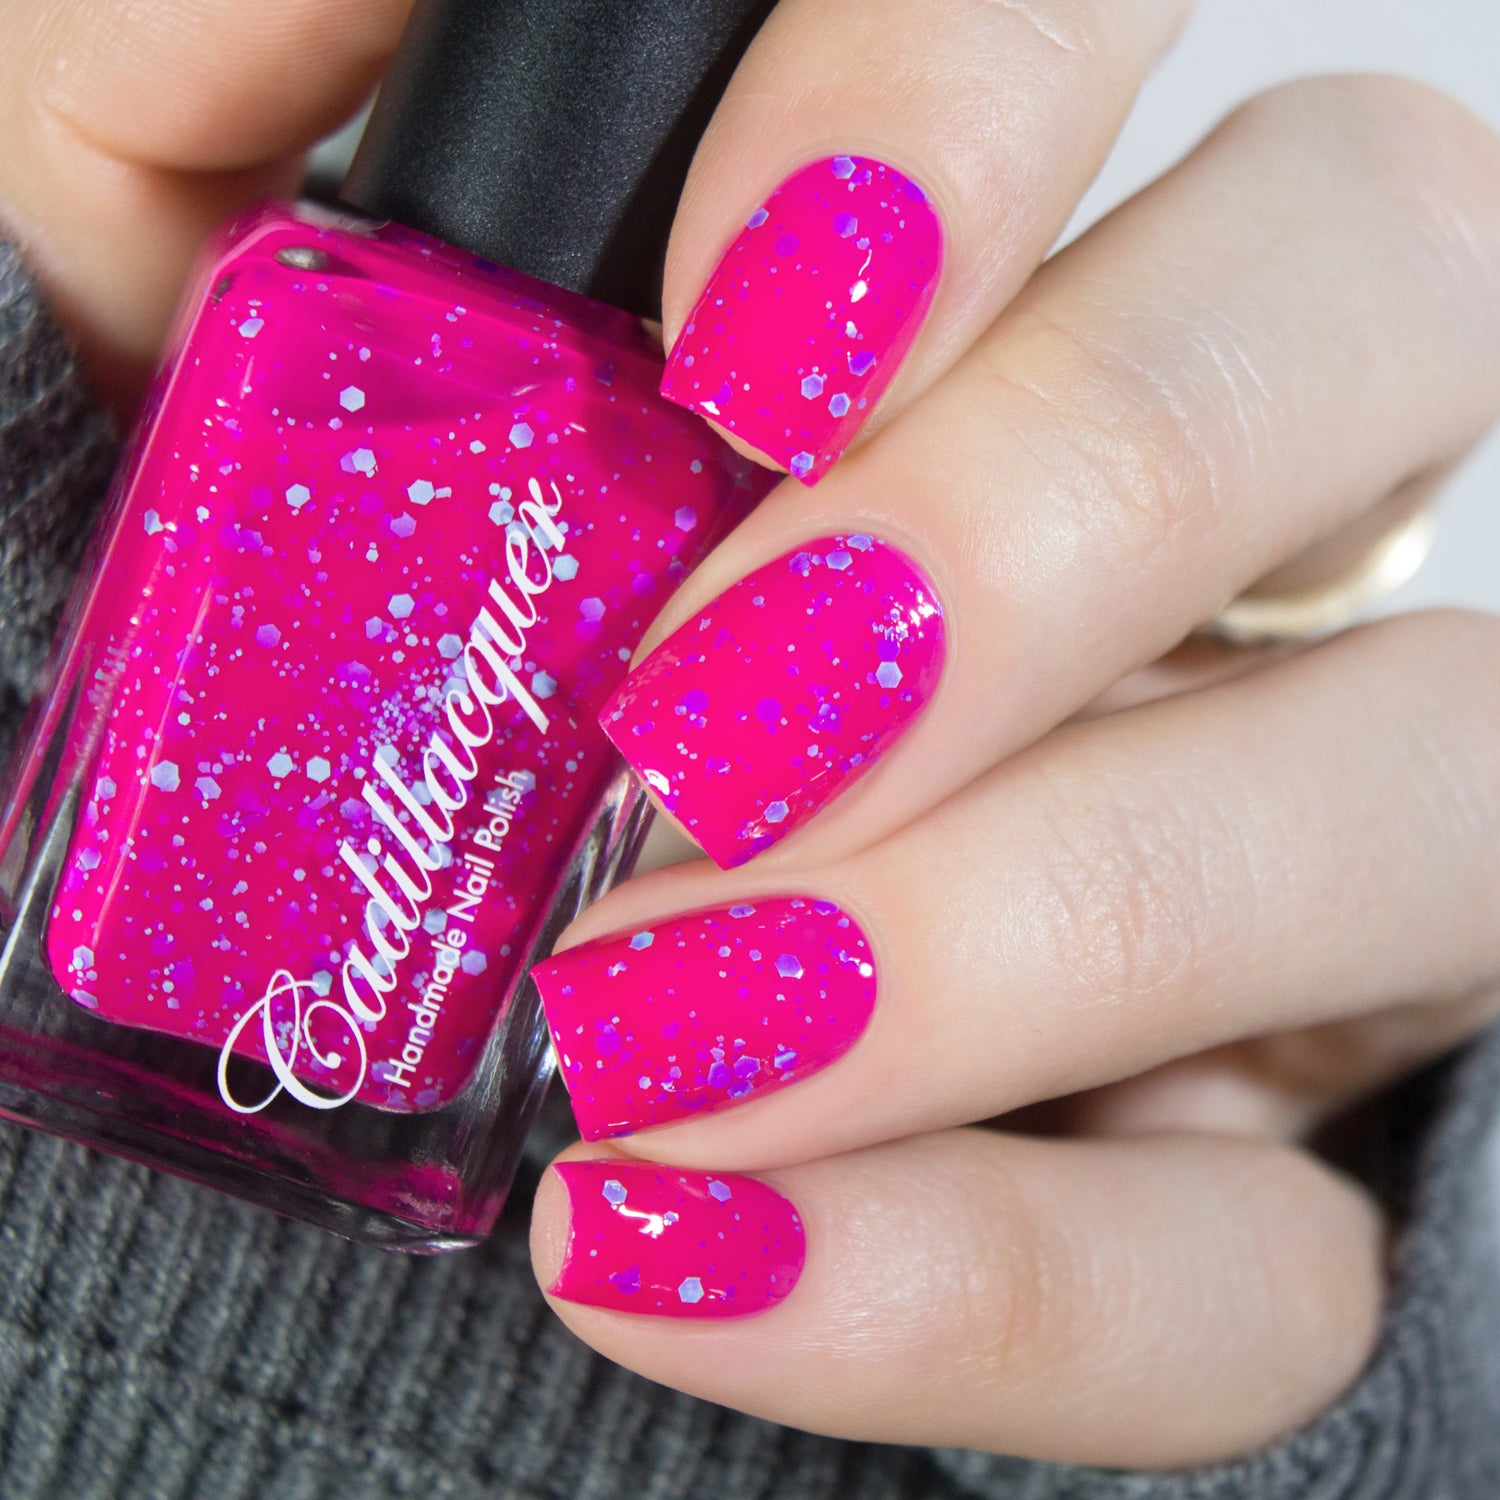 Cadillacquer - All I Want Part 2 - Cupcake